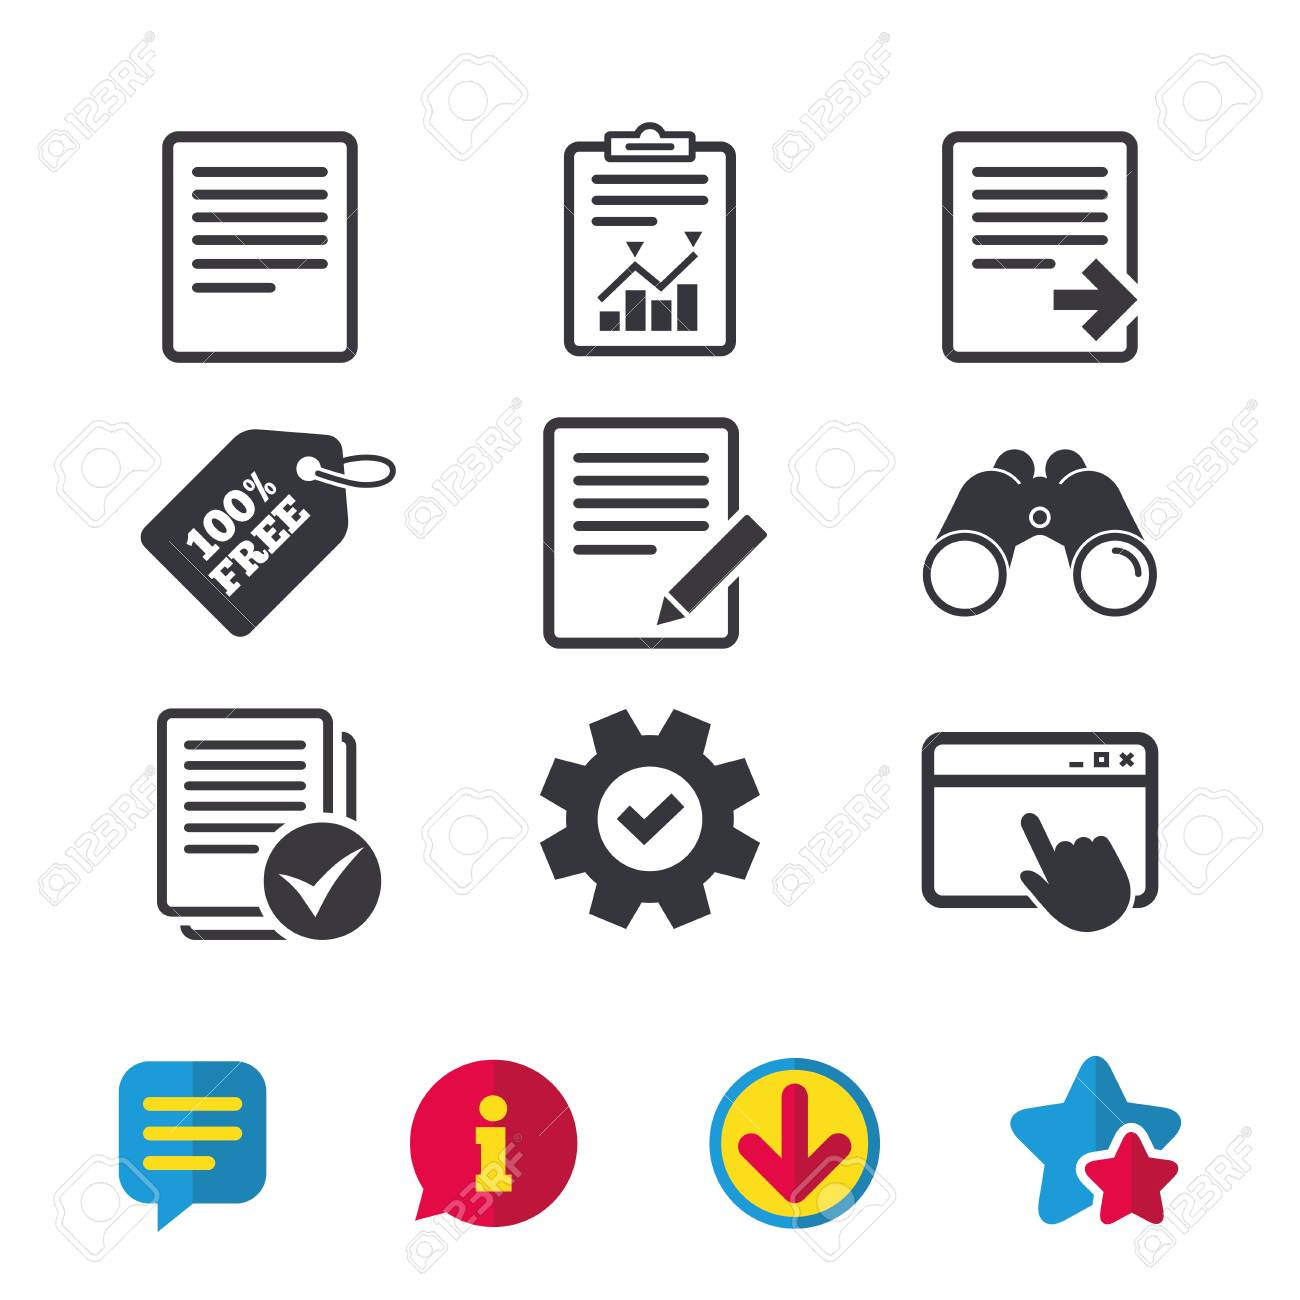 File document icons  Download file symbol  Edit content with